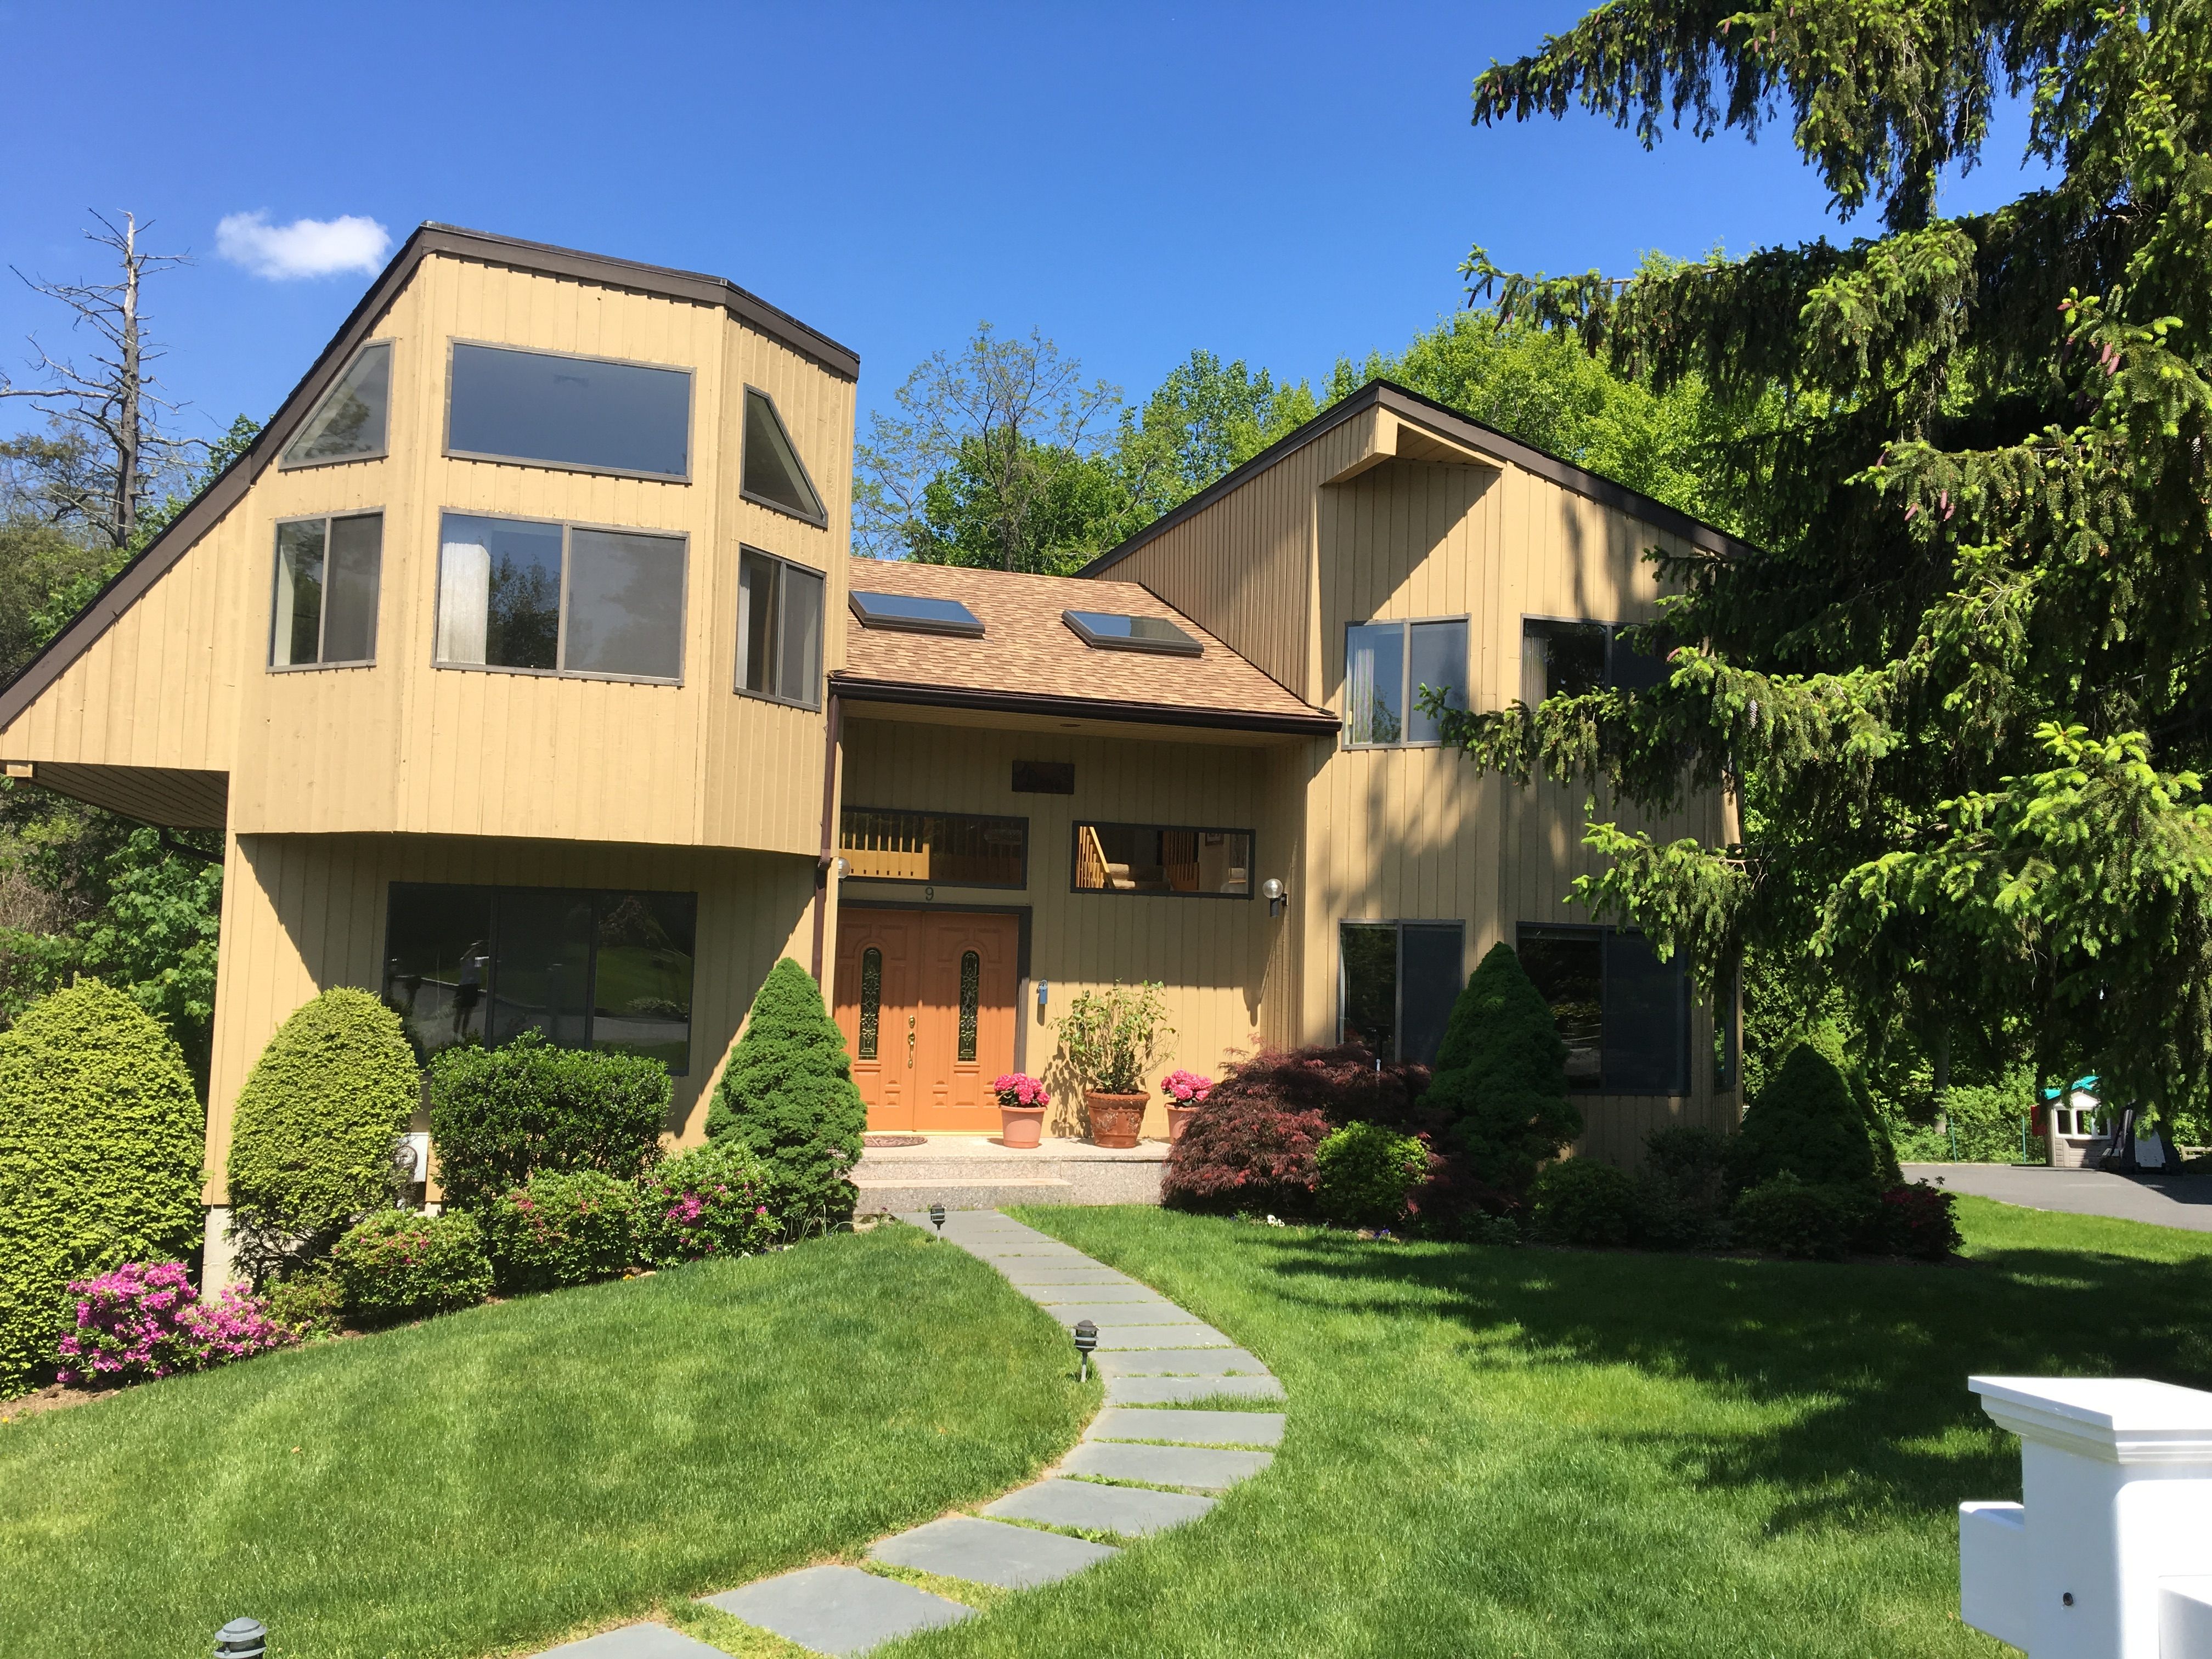 Single Family Home for Sale at 9 Deer Run Rye Brook, New York, 10573 United States